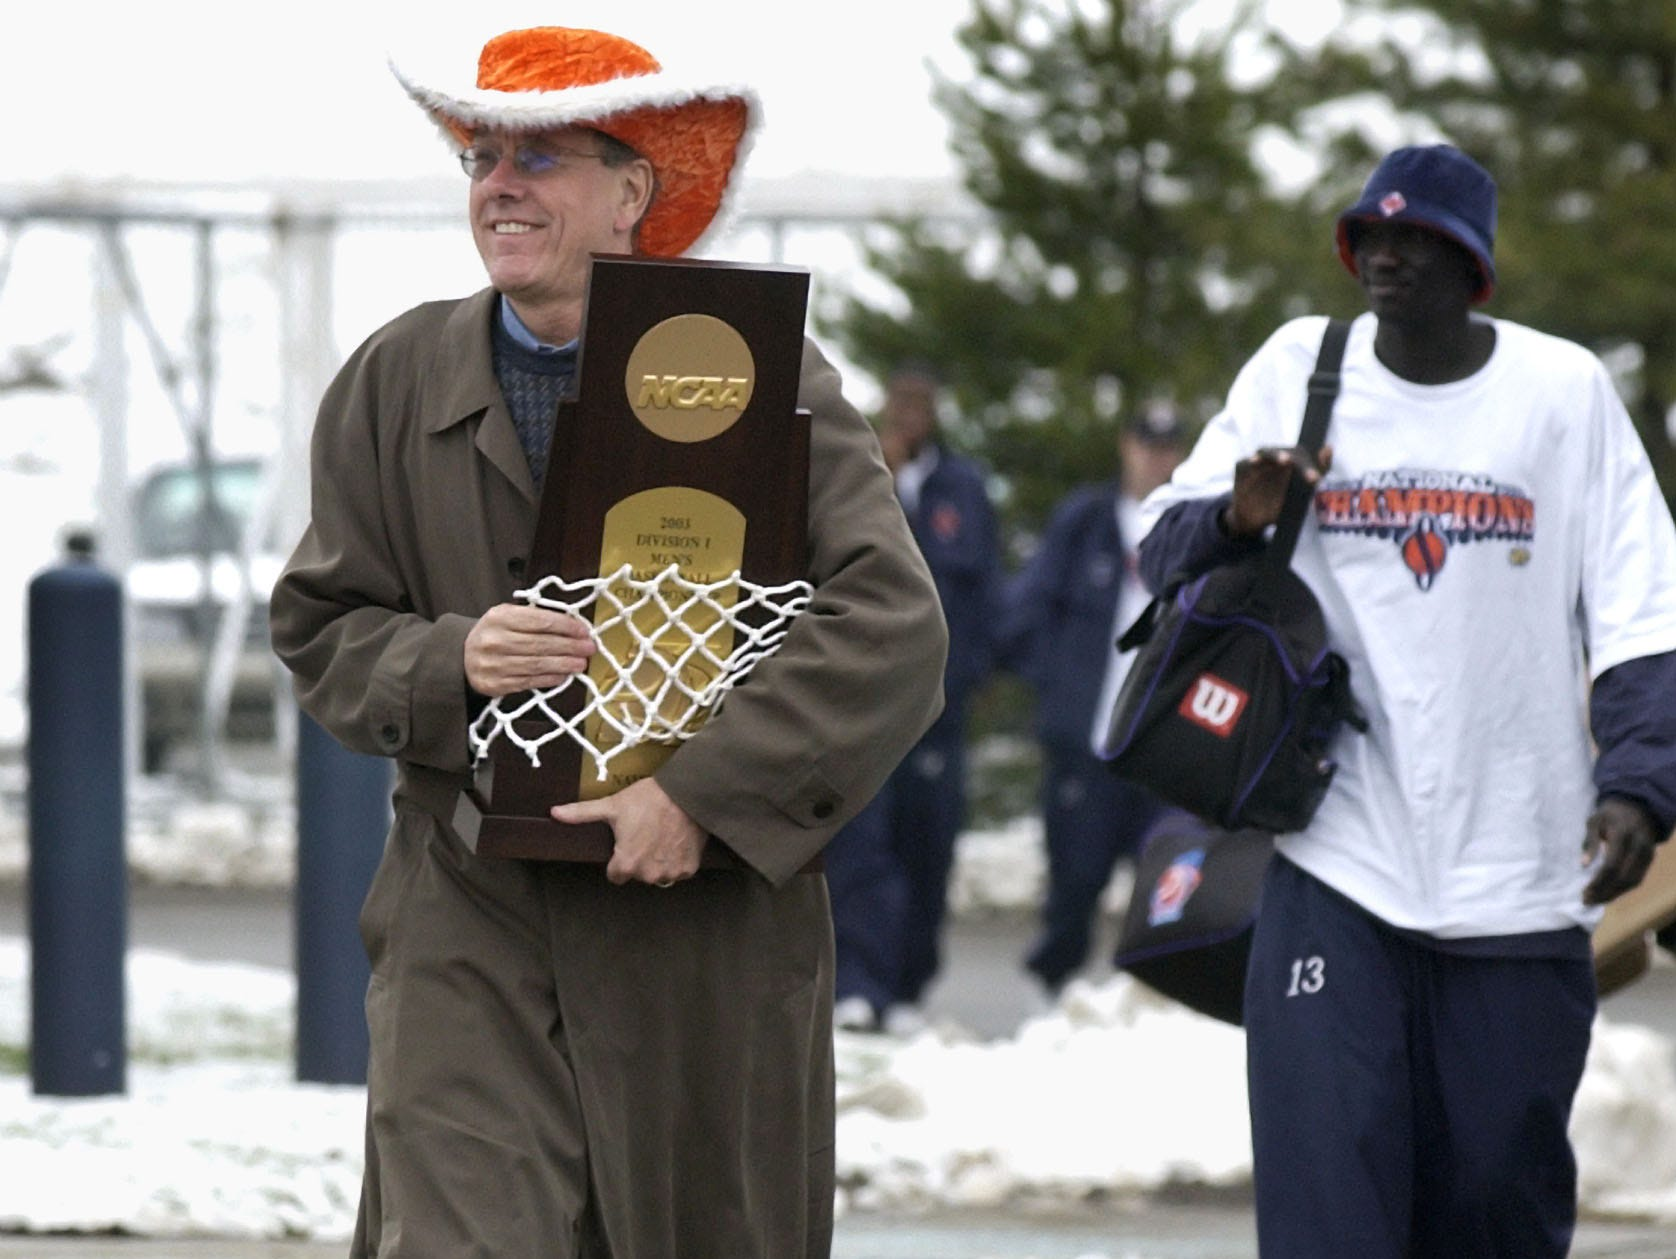 2003: Syracuse head coach Jim Boeheim leads his players while clutching the NCAA Championship trophy and net upon arriving in Syracuse, N.Y., Tuesday, April 8, 2003. The Orangemen defeated Kansas for the national title Monday night. Senior Kueth Duany, rear, follows.  (AP Photo/Kevin Rivoli)